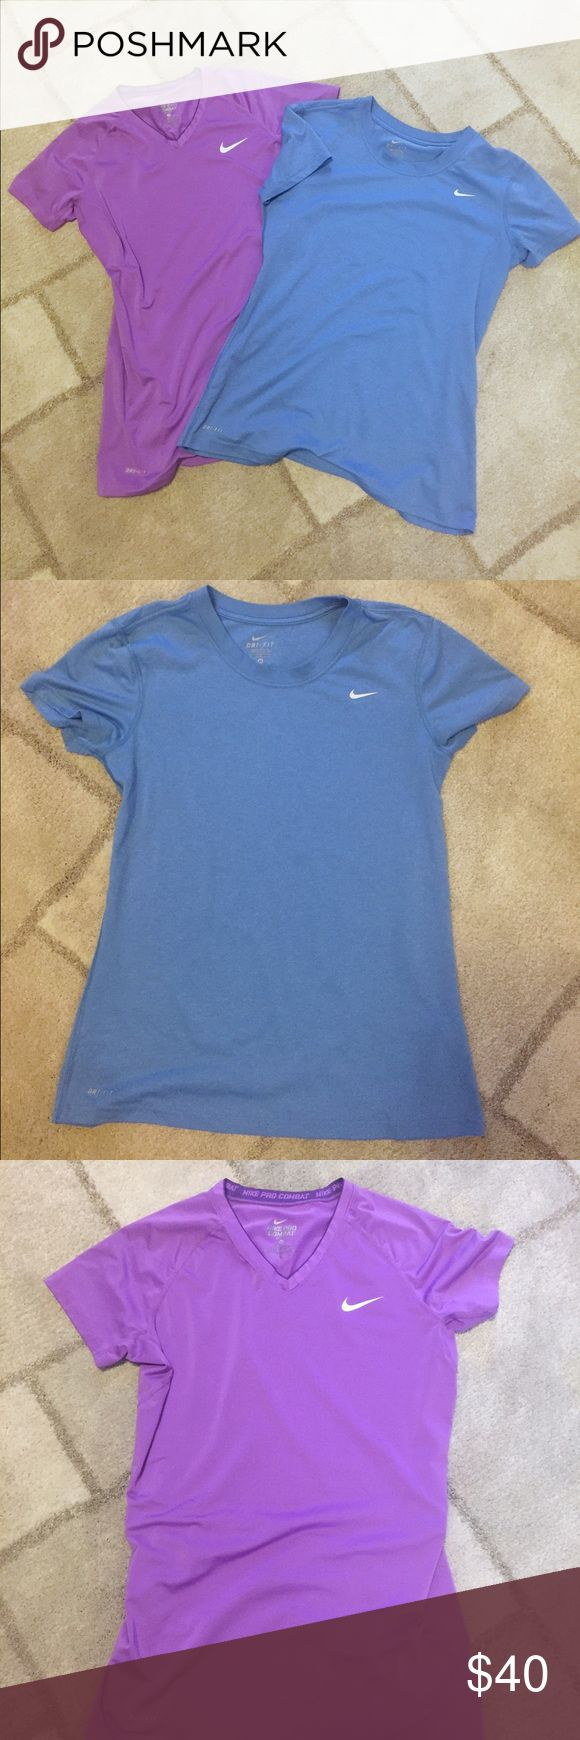 Bundle Nike Pro T-Shirts Bundle of 2 mint condition Nike pro t shirts. Blue and purple both sized Medium. Both are Dri-Fit. Purple shirt is a Nike Pro Combat V Neck and Blue shirt is Crew neck. Nike Tops Tees - Short Sleeve